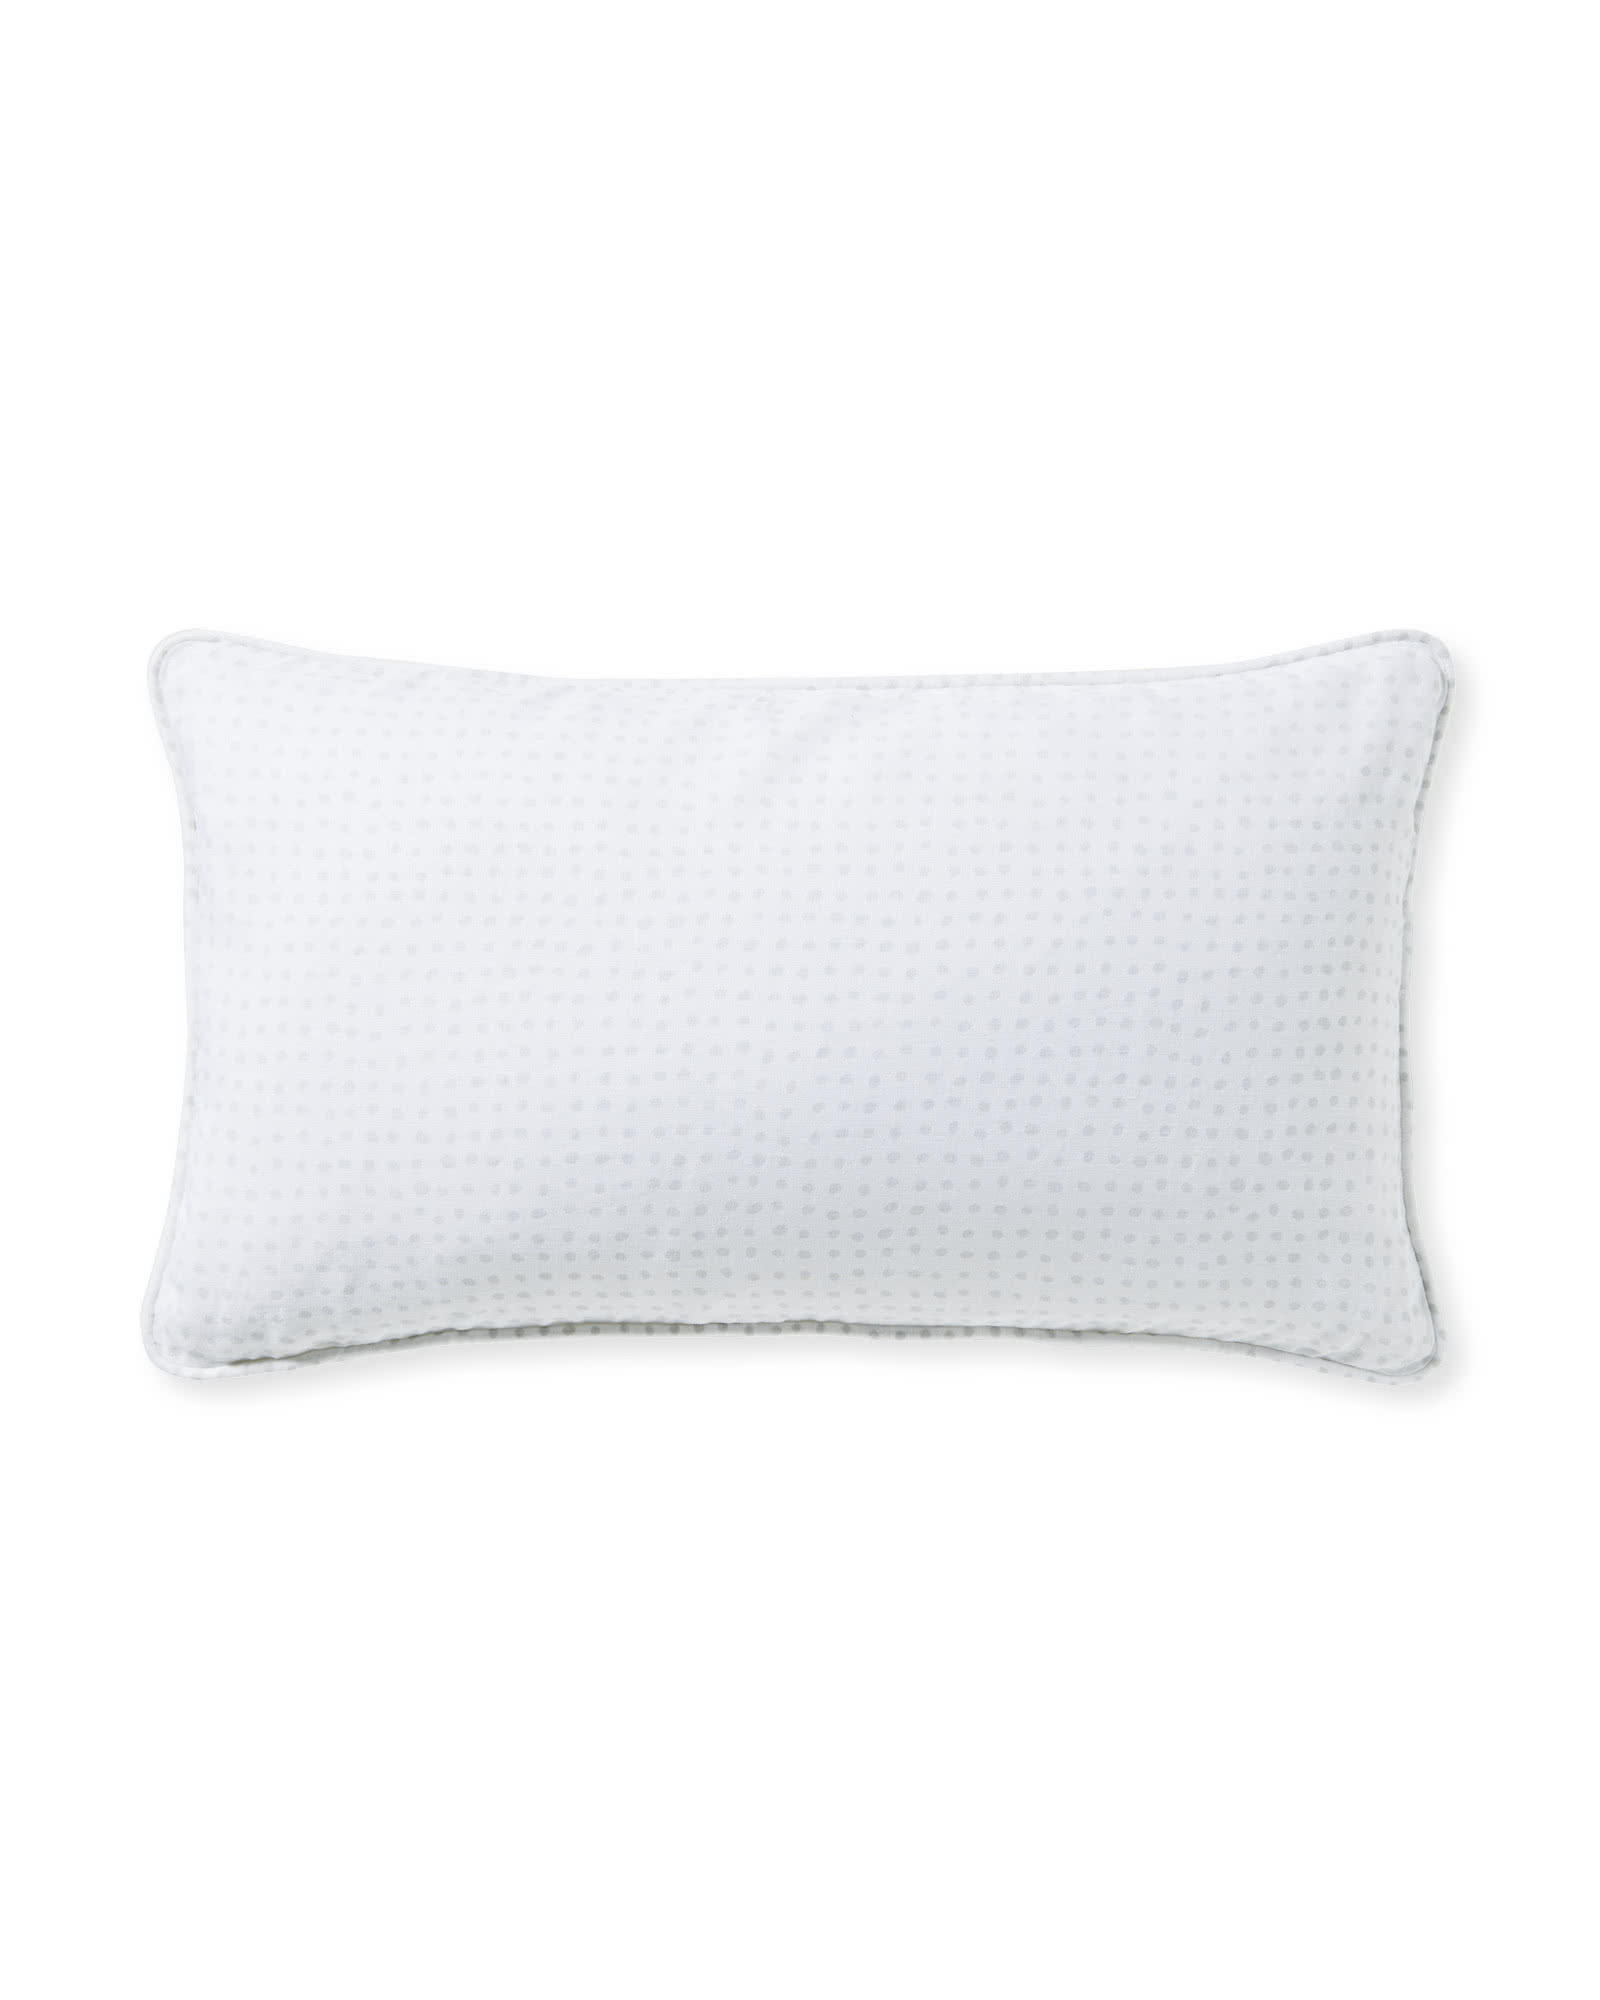 Sorrento Pillow Cover